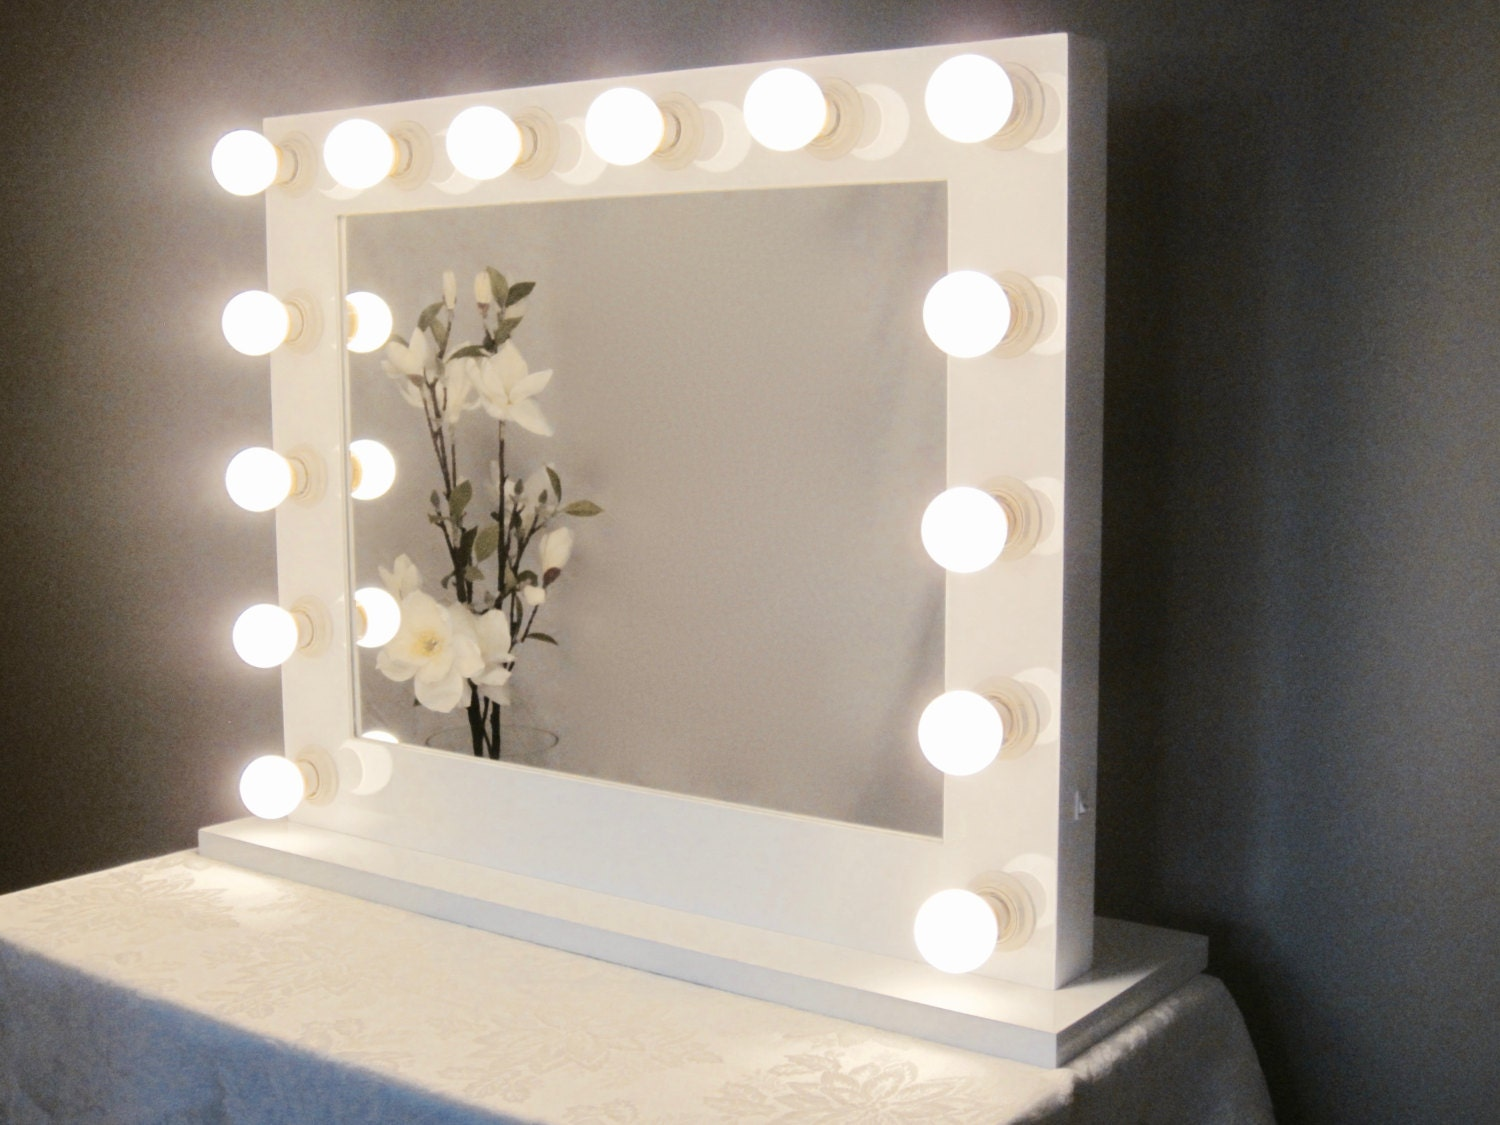 Vanity Mirror With Lights : Grand Hollywood Lighted Vanity Mirror w/ LED Bulbs by ImpactVanity